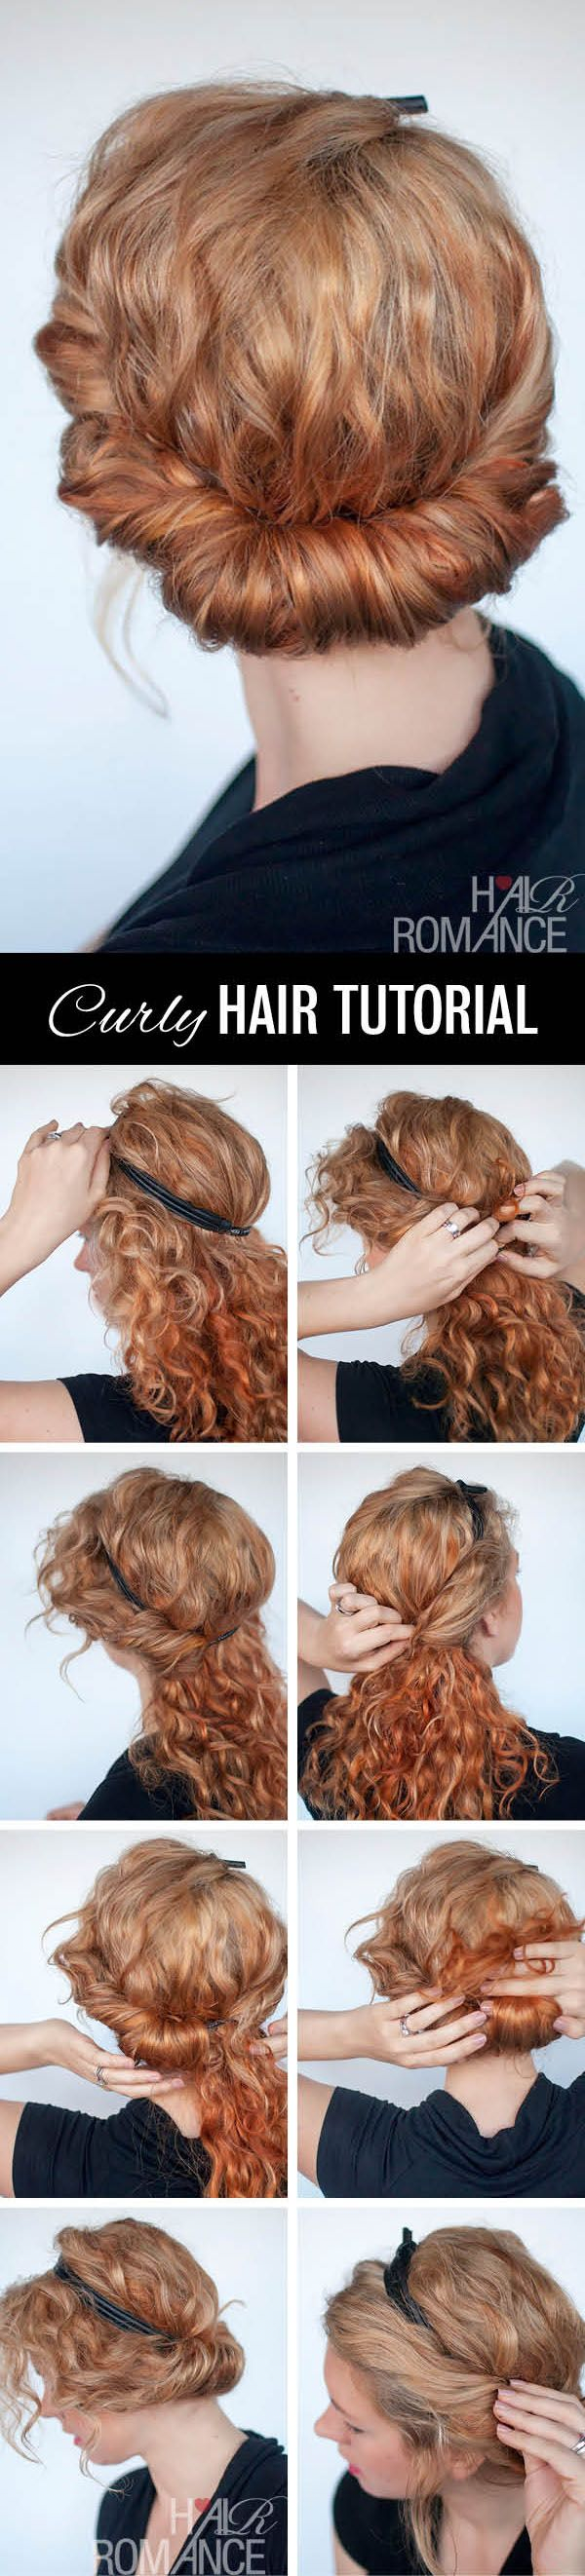 See more curly hair tutorials on http://pinmakeuptips.com/best-hot-curly-hair-styles/: